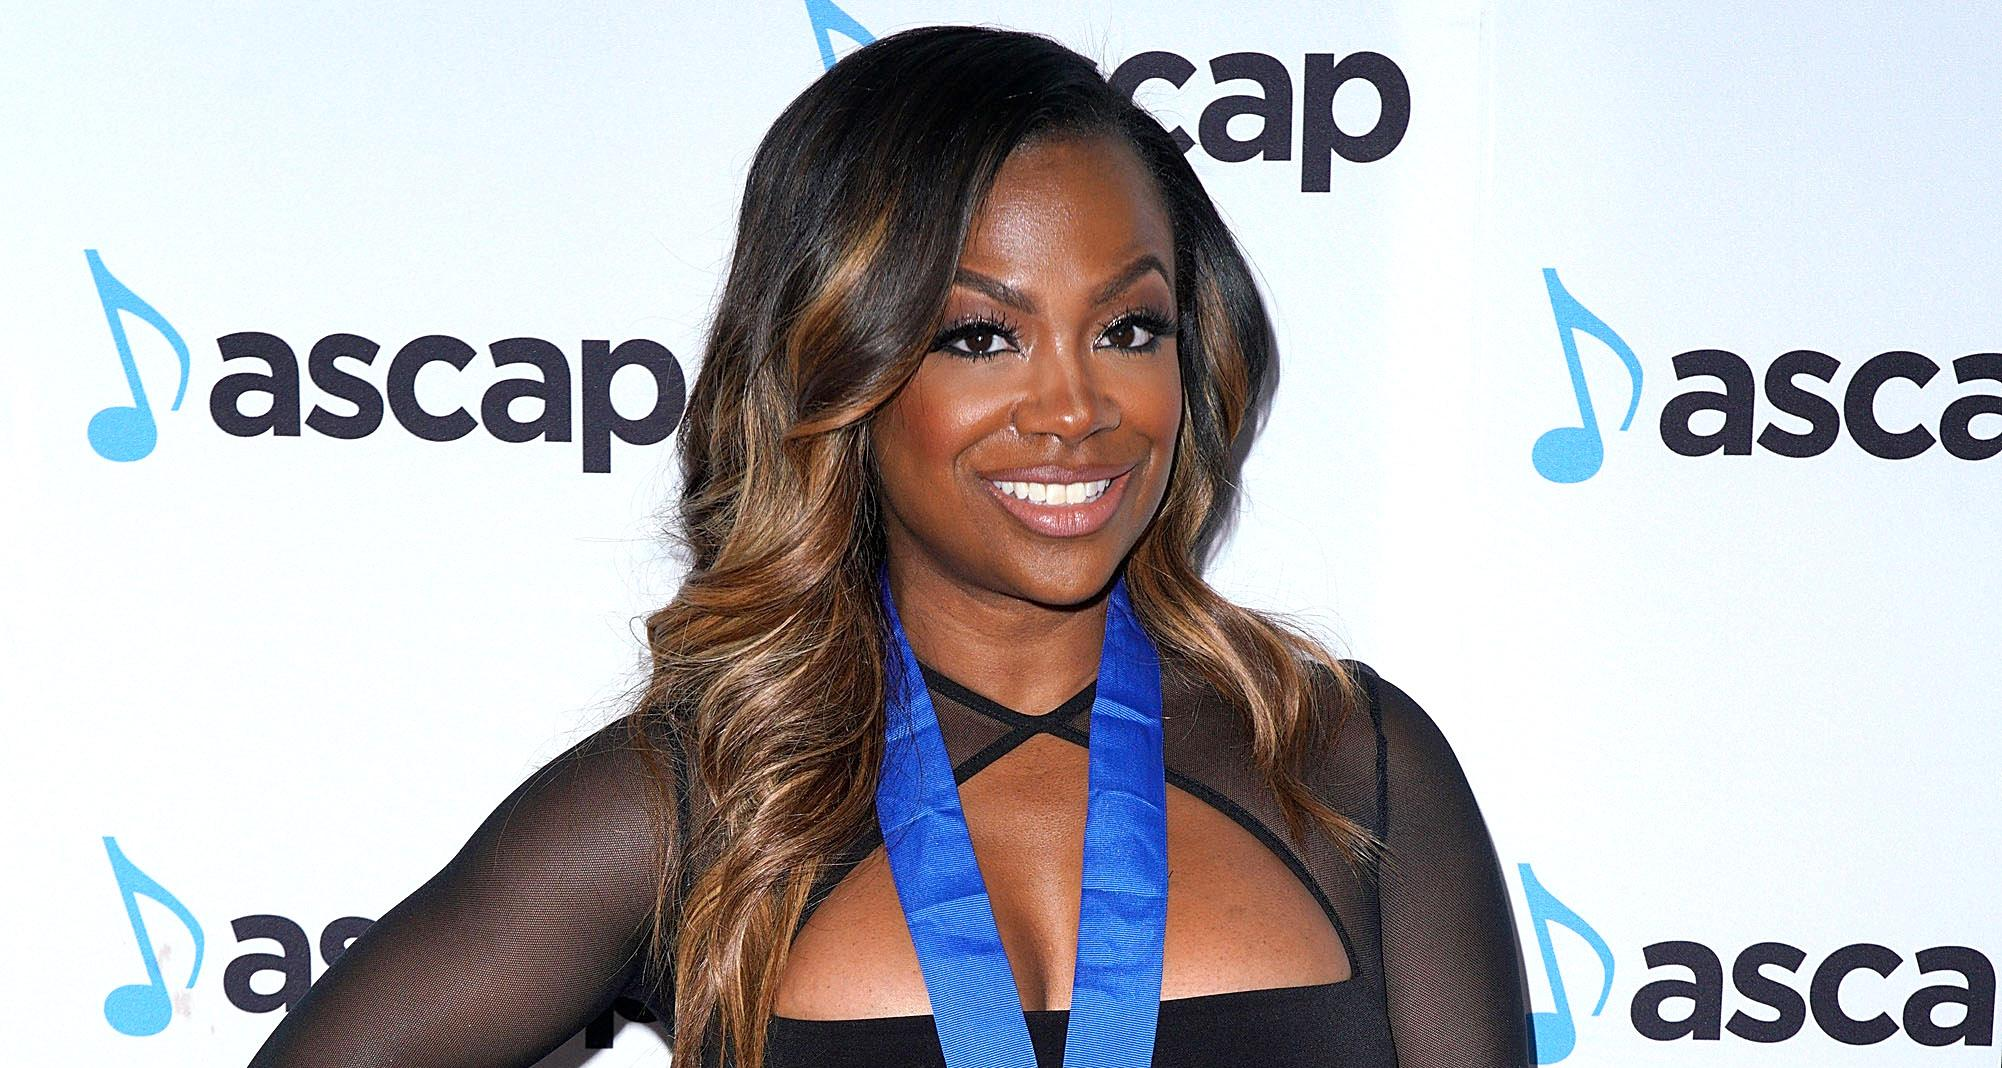 Kandi Burruss Net Worth In 2018 Is Estimated At 35 Million